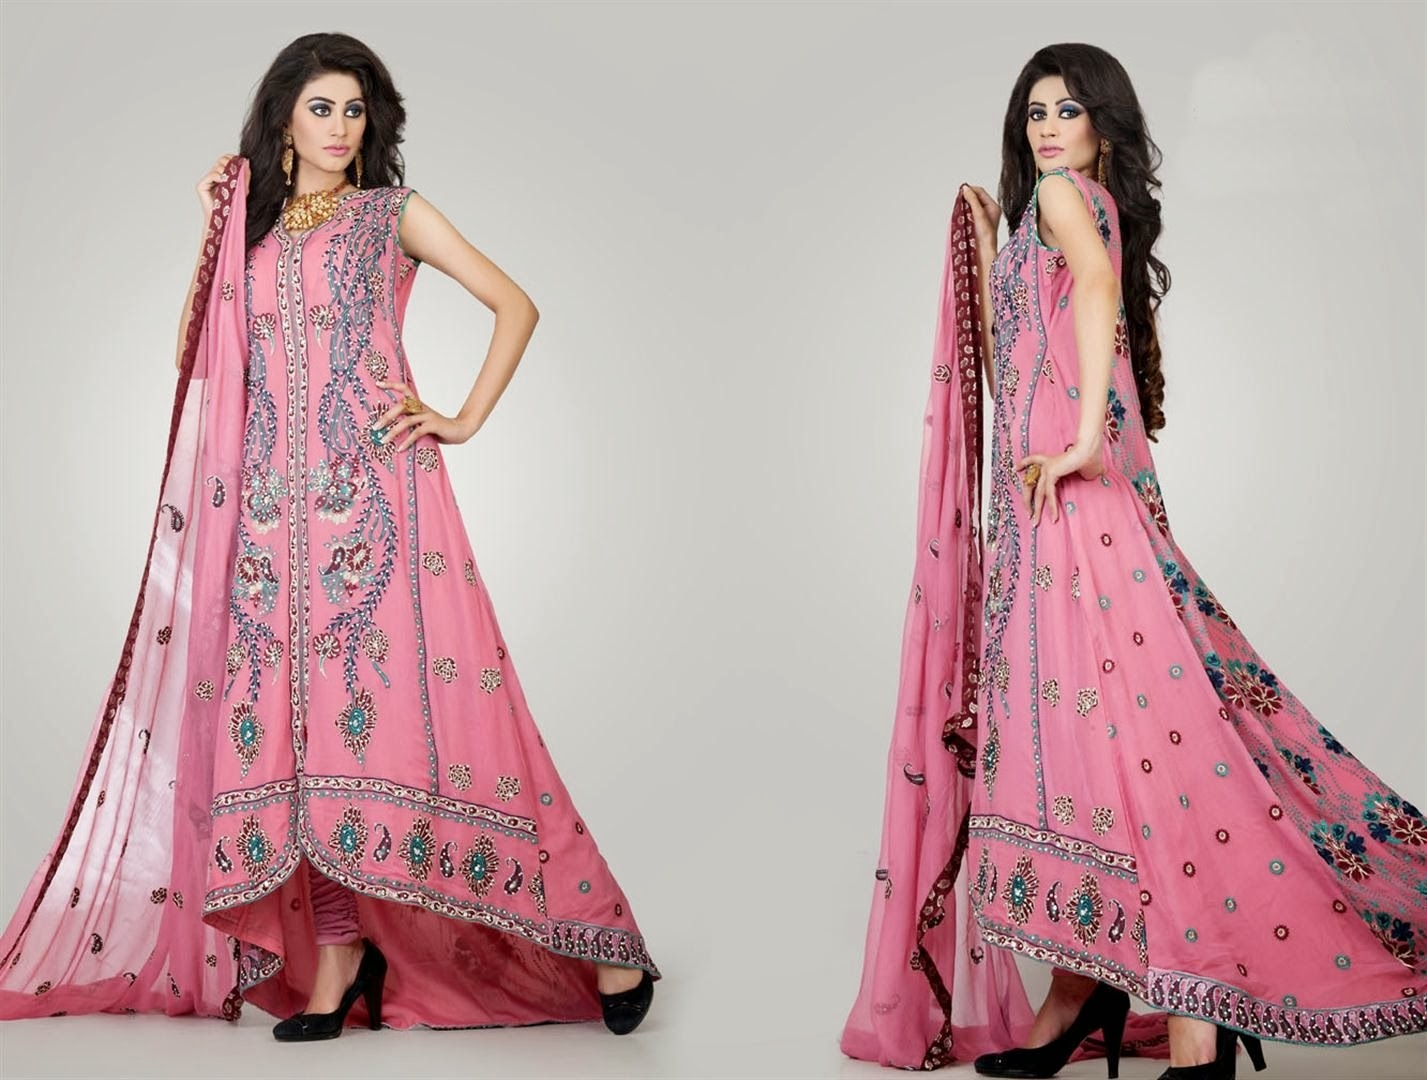 Wearing shalwar kameez can make your every occasion and festival colorful and classy!